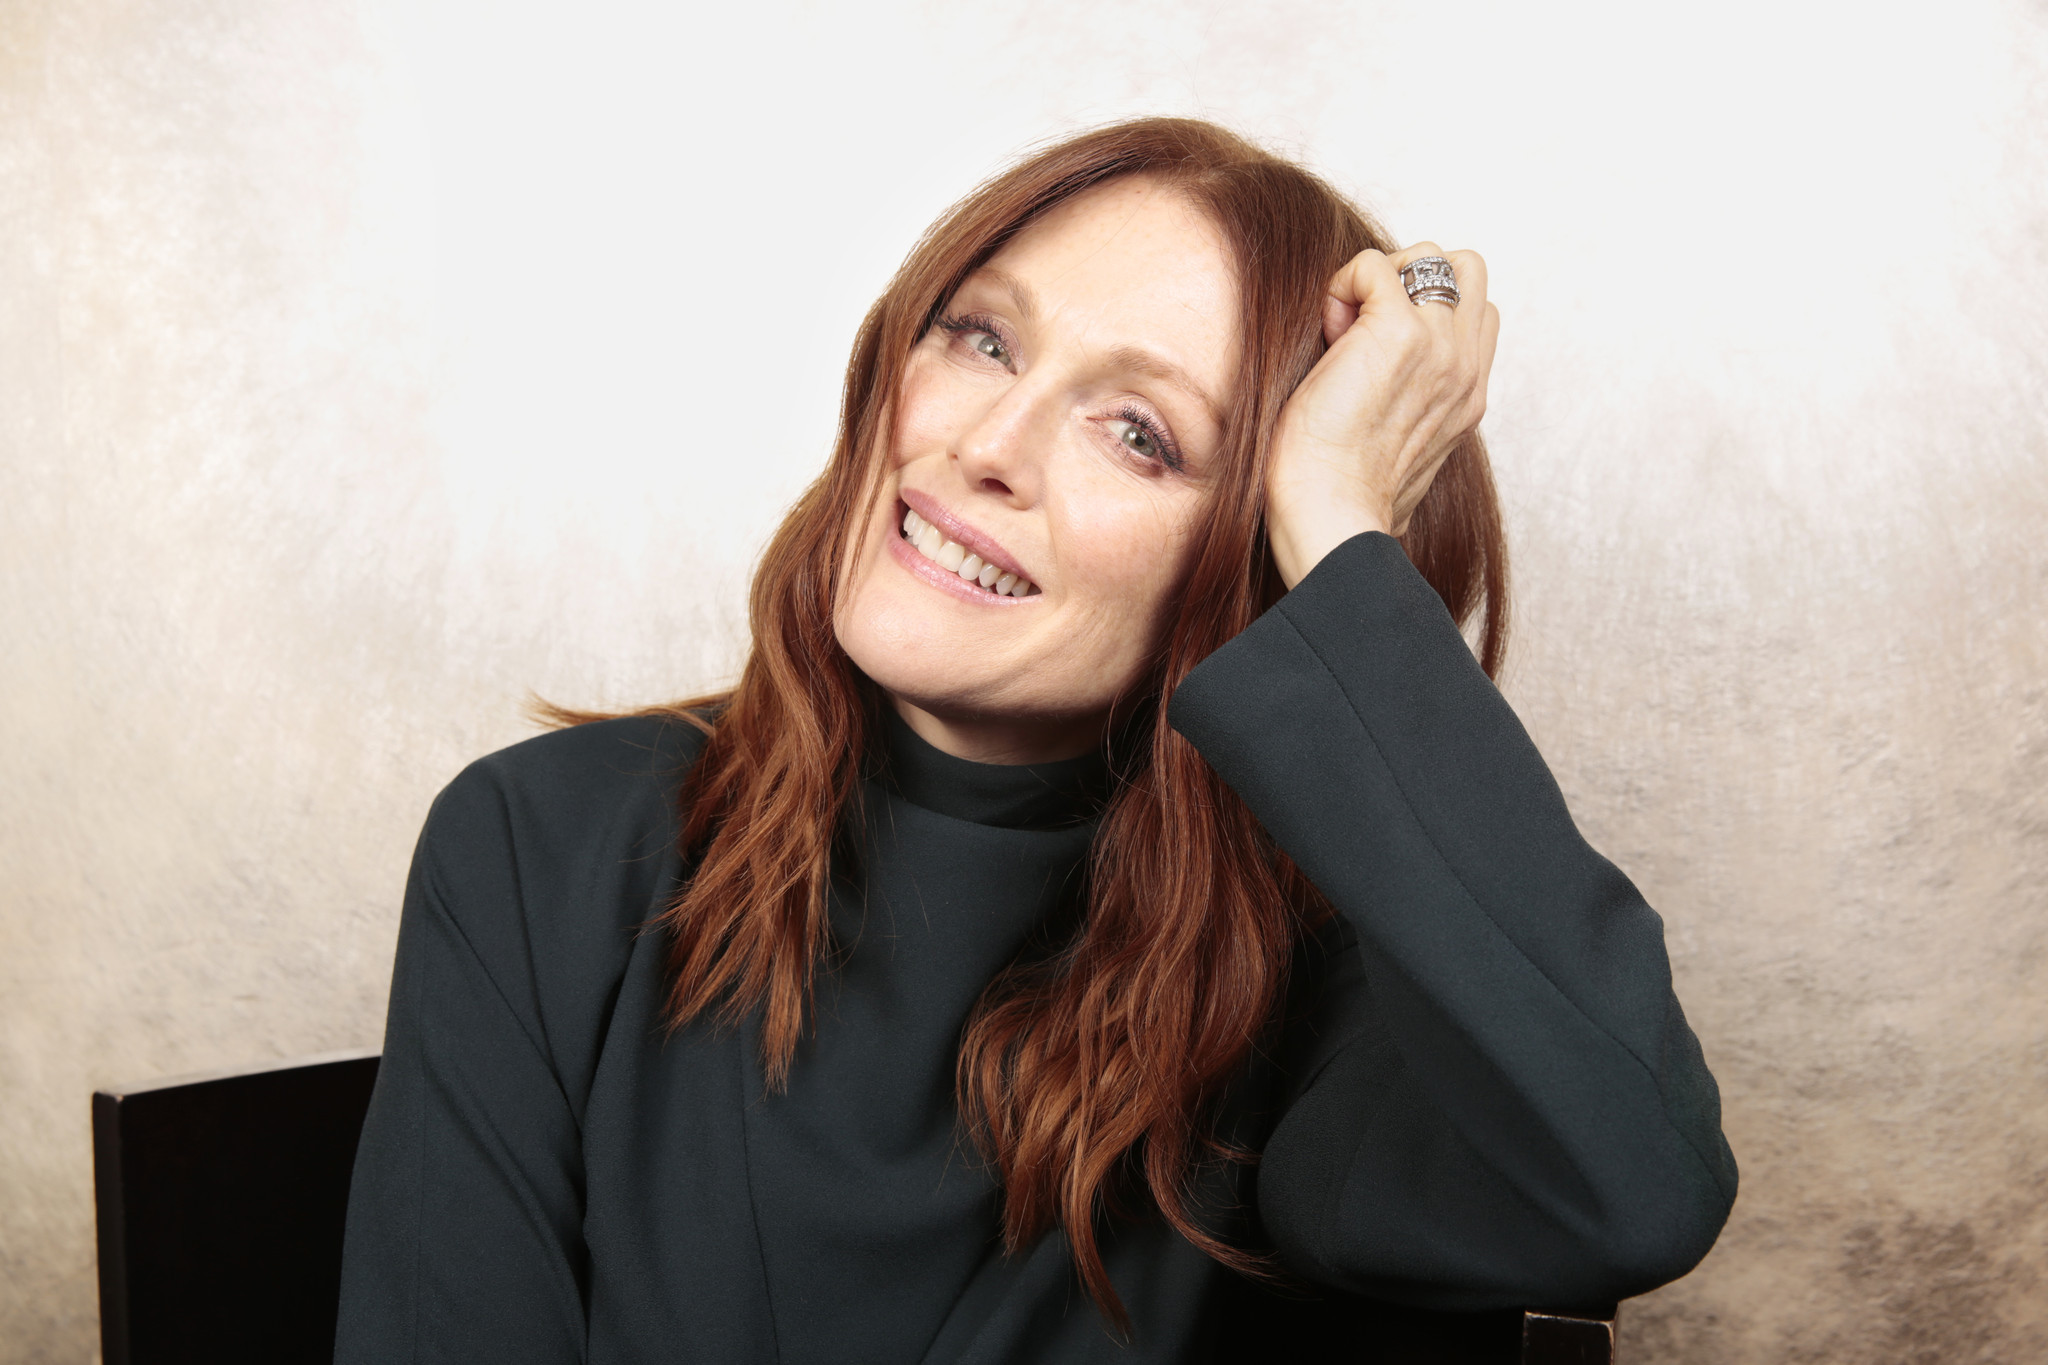 Julianne Moore dressed casually, smiling at the camera